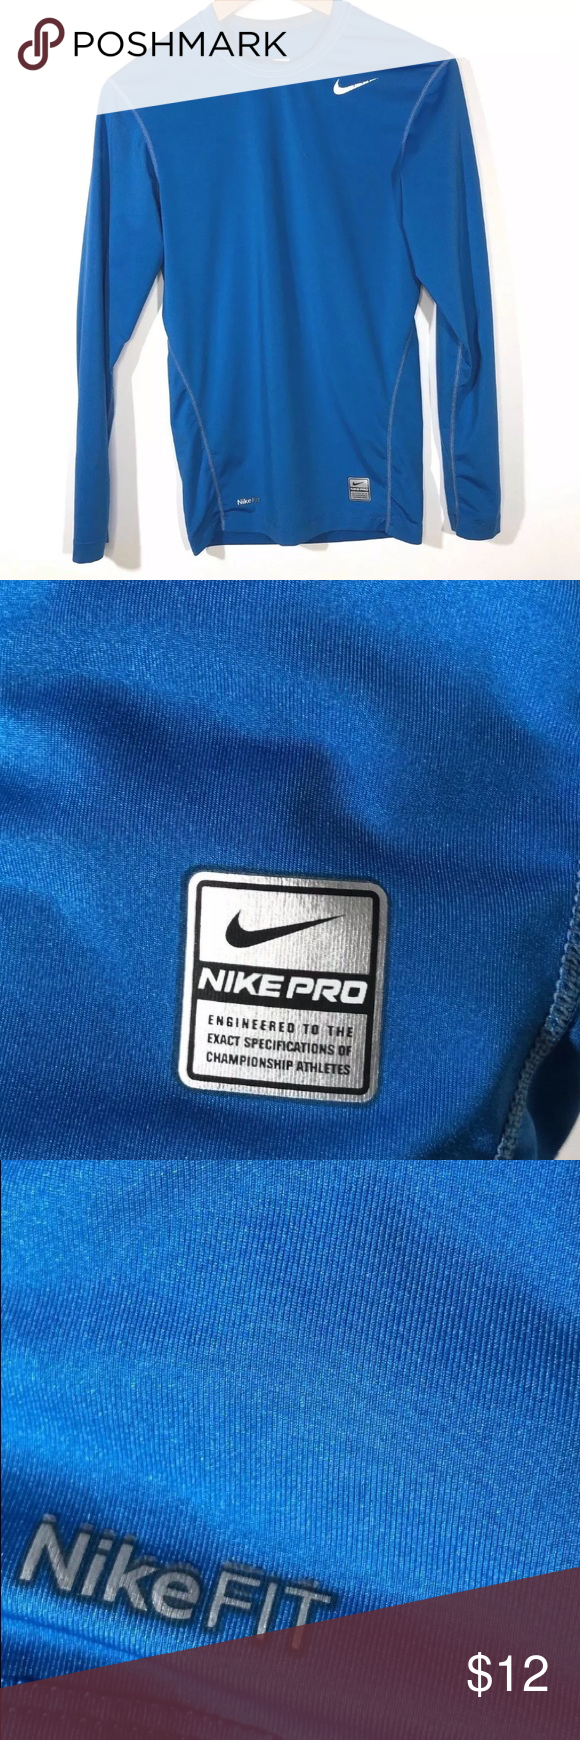 40592fd1 Nike Fit Pro Boys Small Long Sleeve Training Shirt Nike Fit Pro Boys Size  Small Long